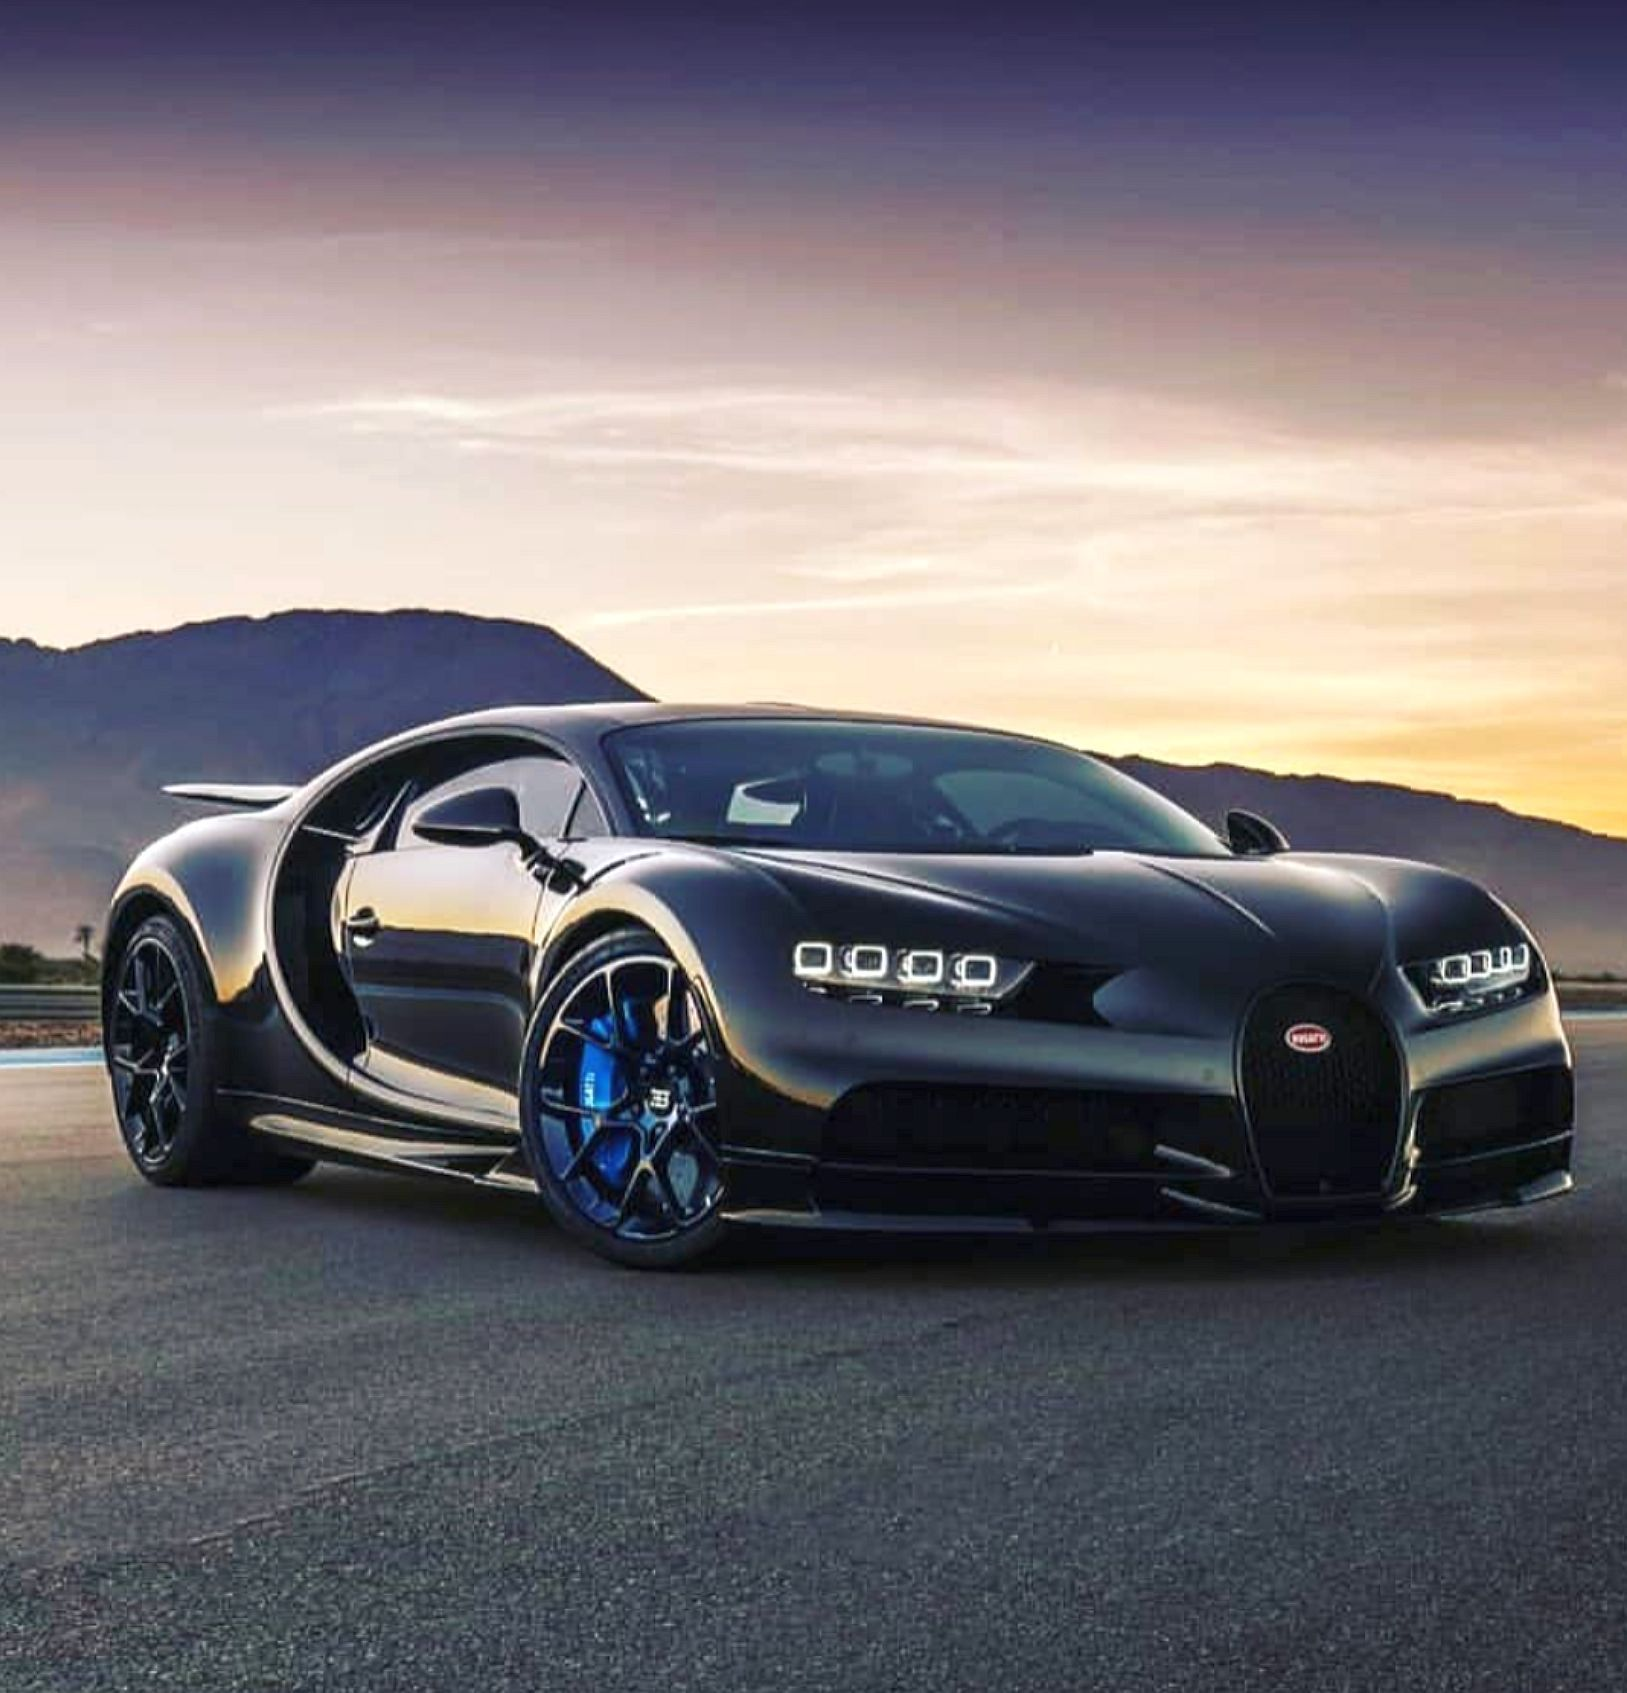 Fastest Car In The World There Are Ferrari Cars Lamborghini Hennessey Venom Koenigsegg Agera R Sports Cars Bugatti Veyron Sports Cars Bugatti Bugatti Cars